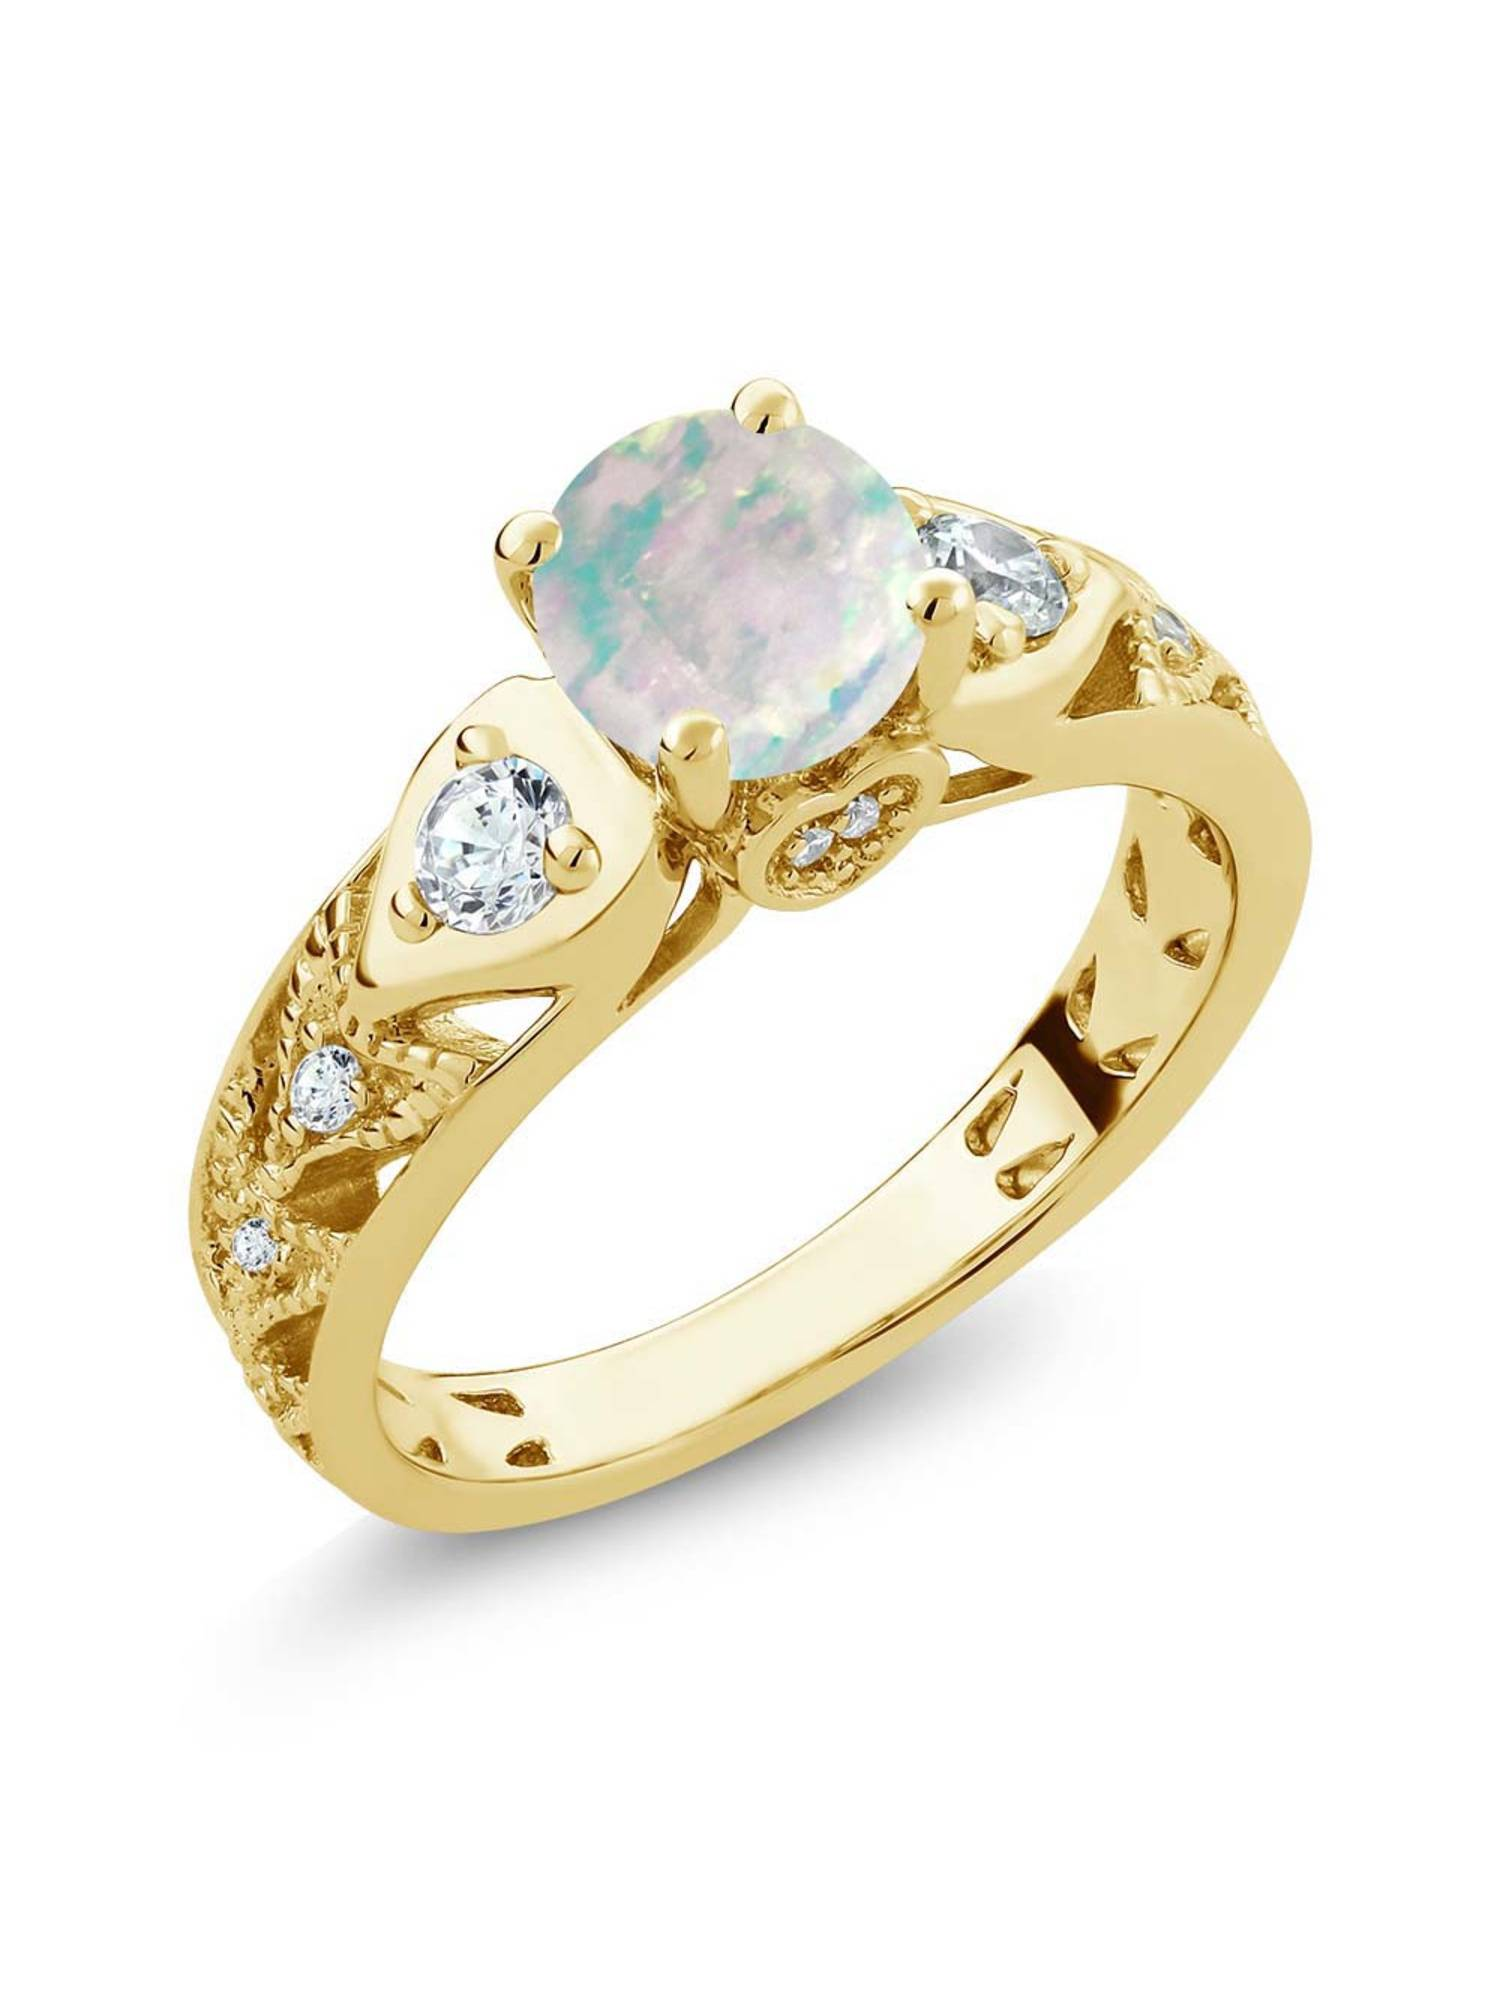 1.56 Ct Round Cabochon White Simulated Opal 18K Yellow Gold Plated Silver Ring by